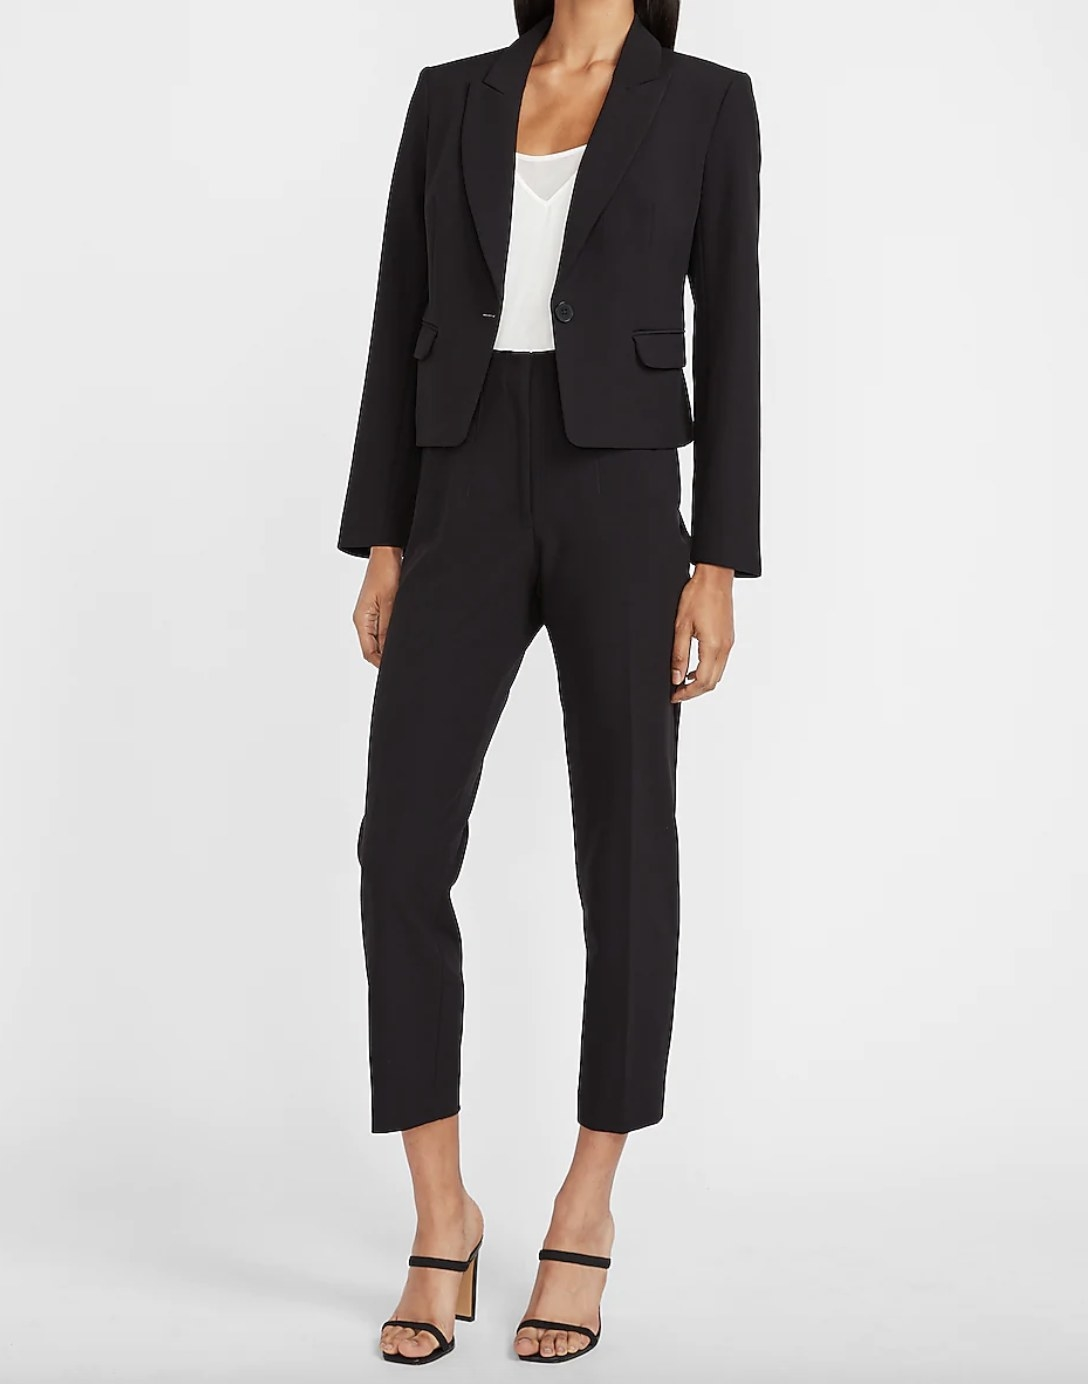 A pair of high-waisted dress pants in black